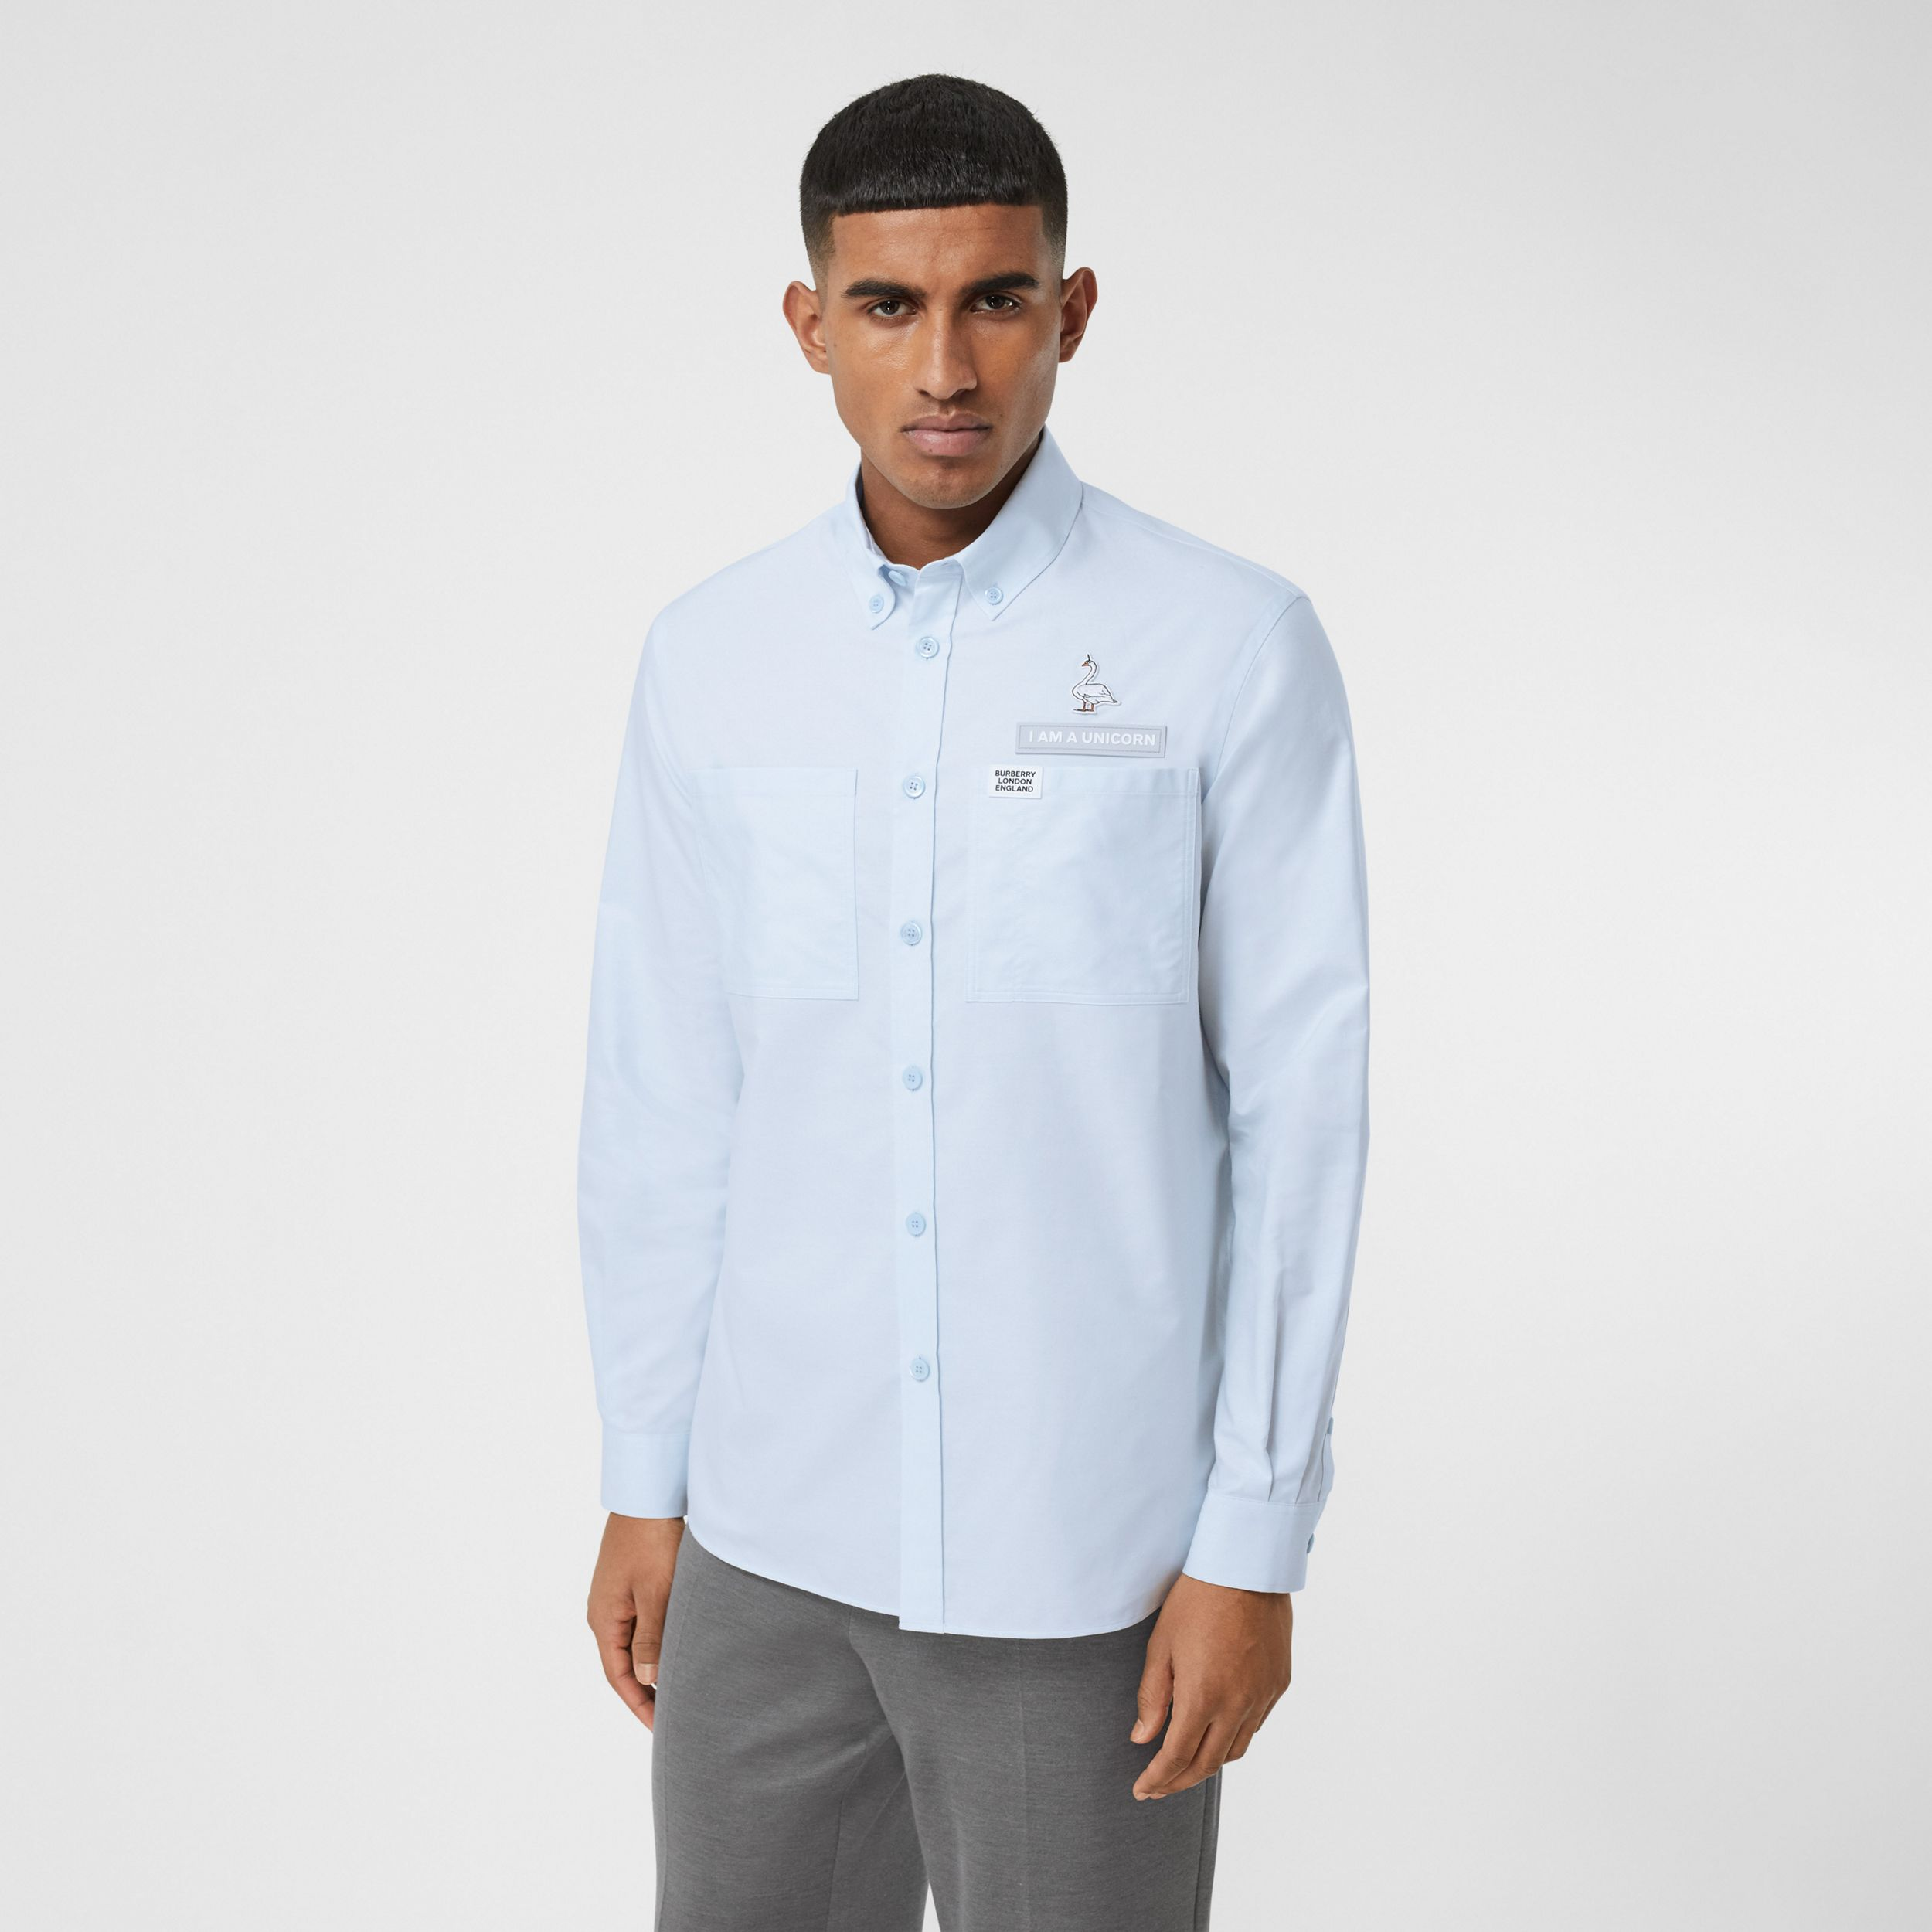 Swan and Slogan Appliqué Cotton Oversized Shirt in Sky Blue - Men | Burberry Hong Kong S.A.R. - 1